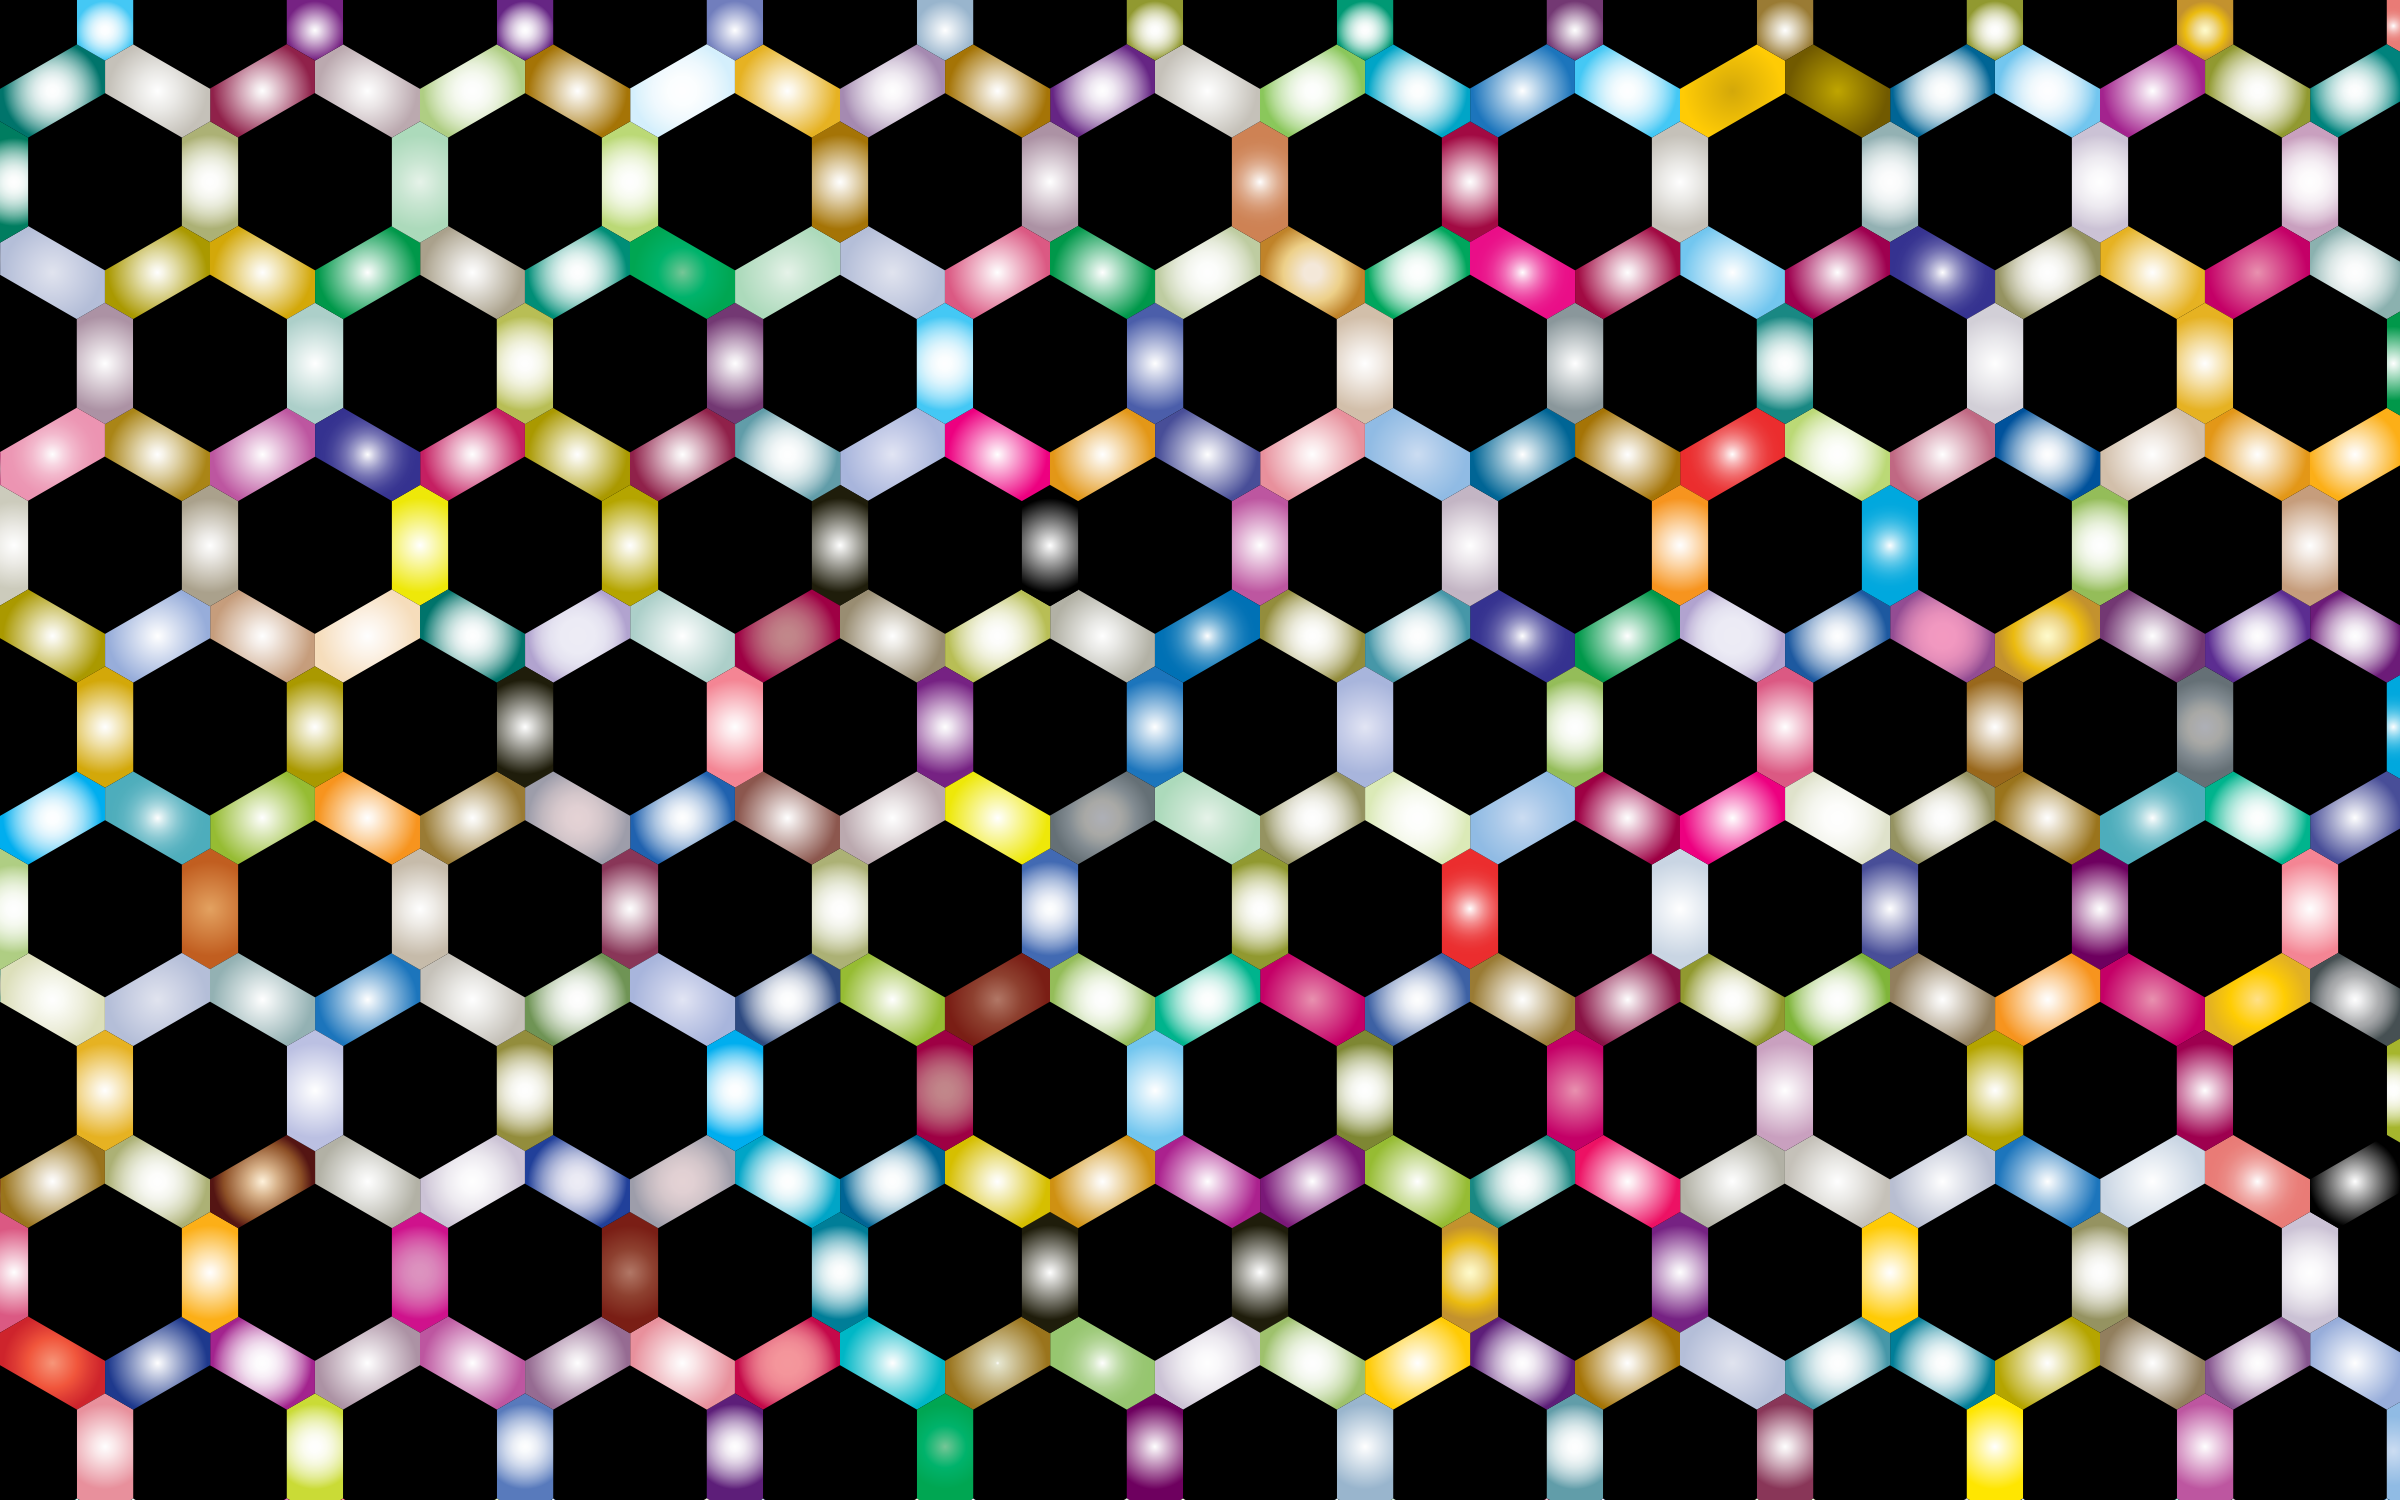 Prismatic Hexagonal Geometric Pattern 2 by GDJ